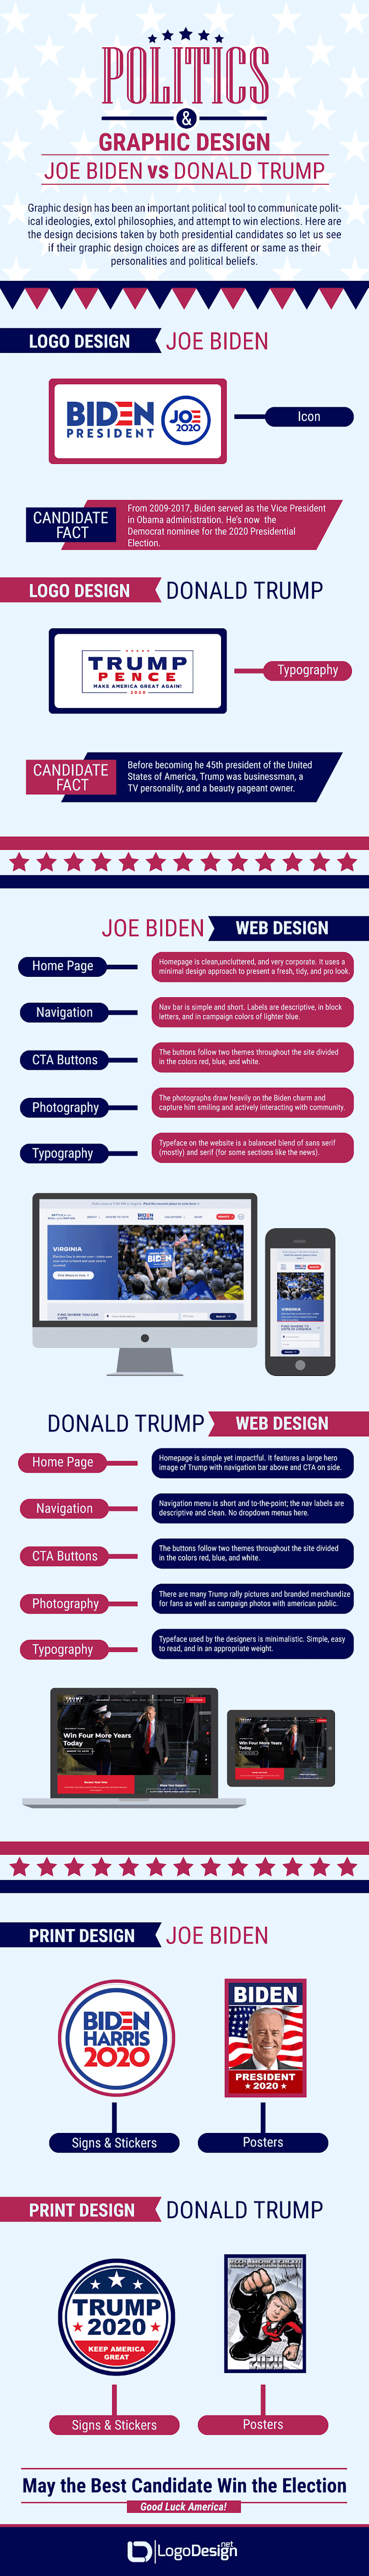 Graphic Designs in Politics: Biden vs. Trump Campaigns #infographic #Political #Graphic Designs #Campaigns